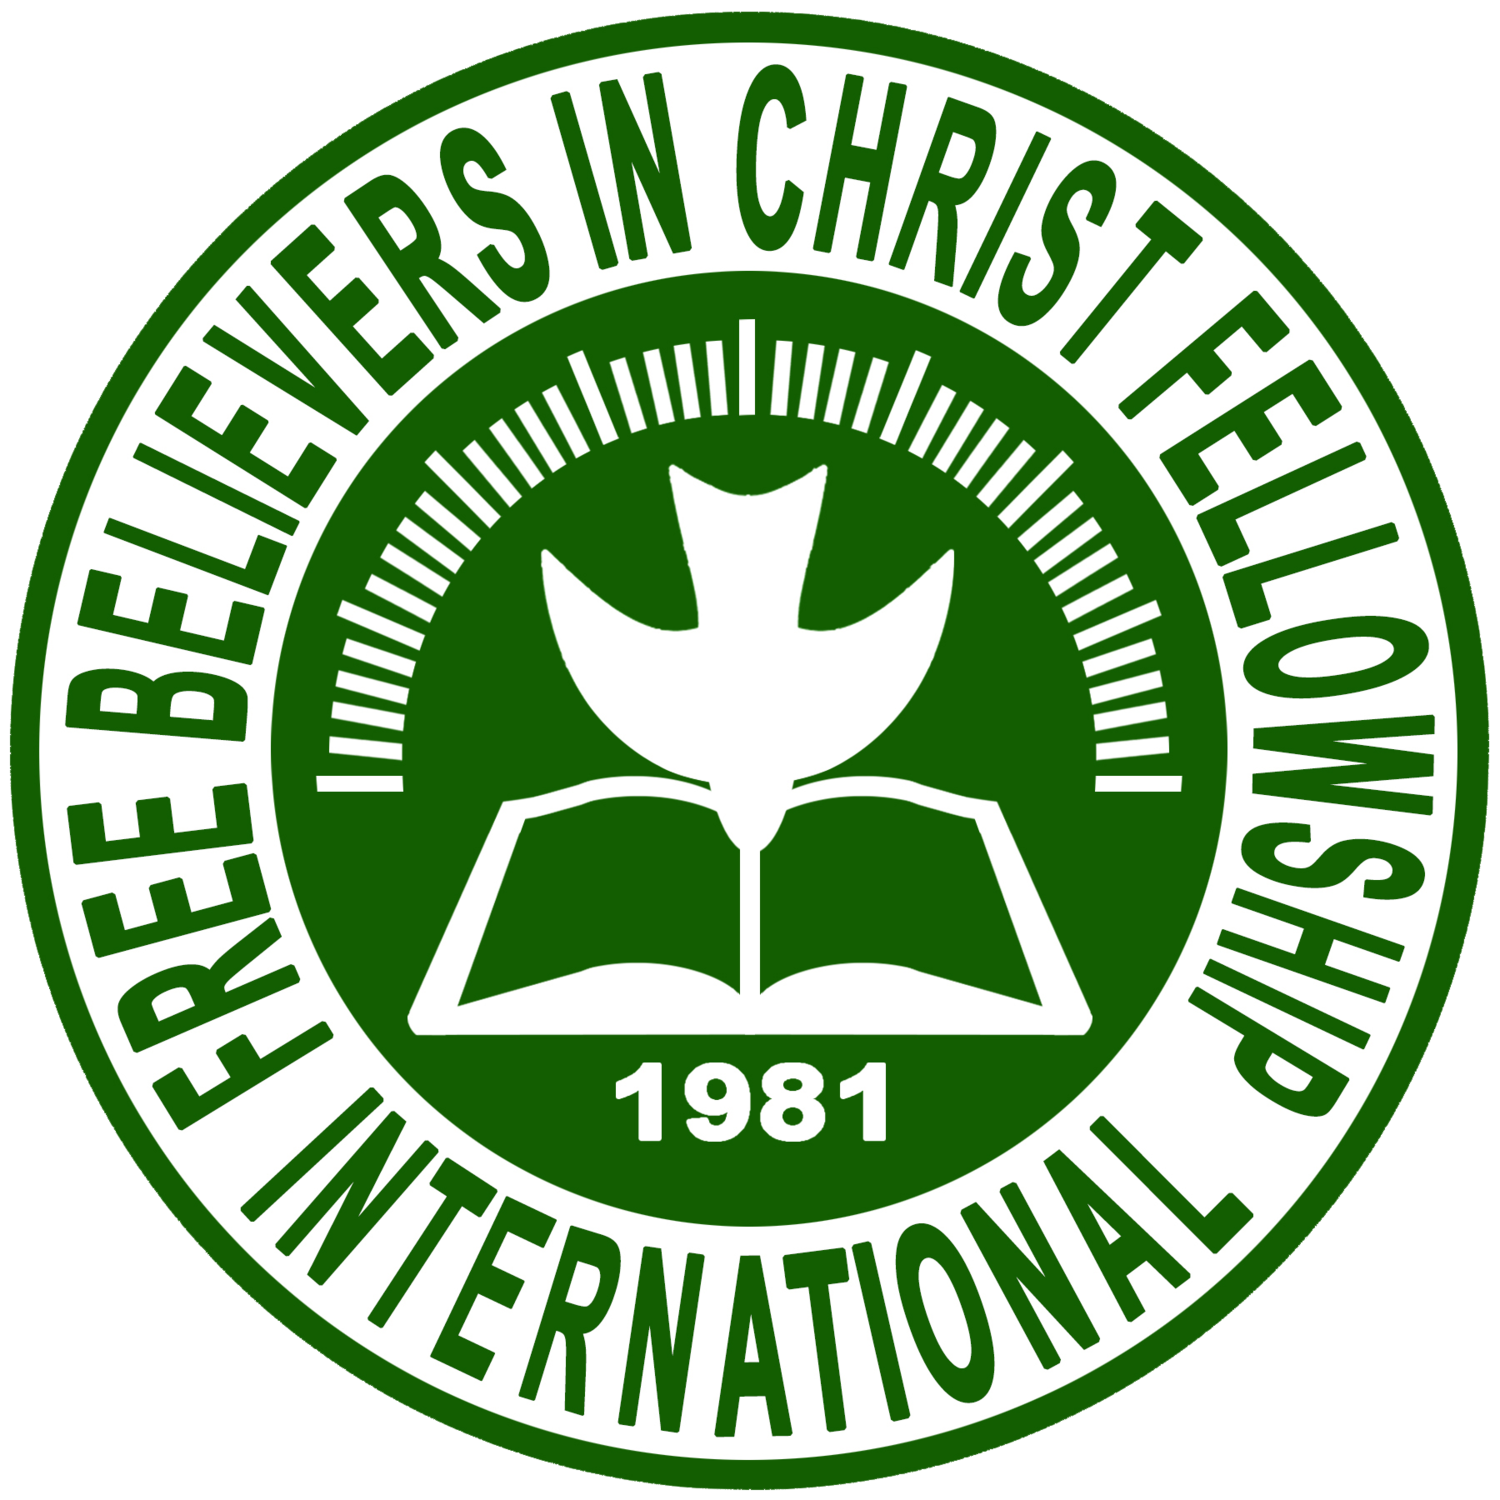 Free Believers In Christ Fellowship International